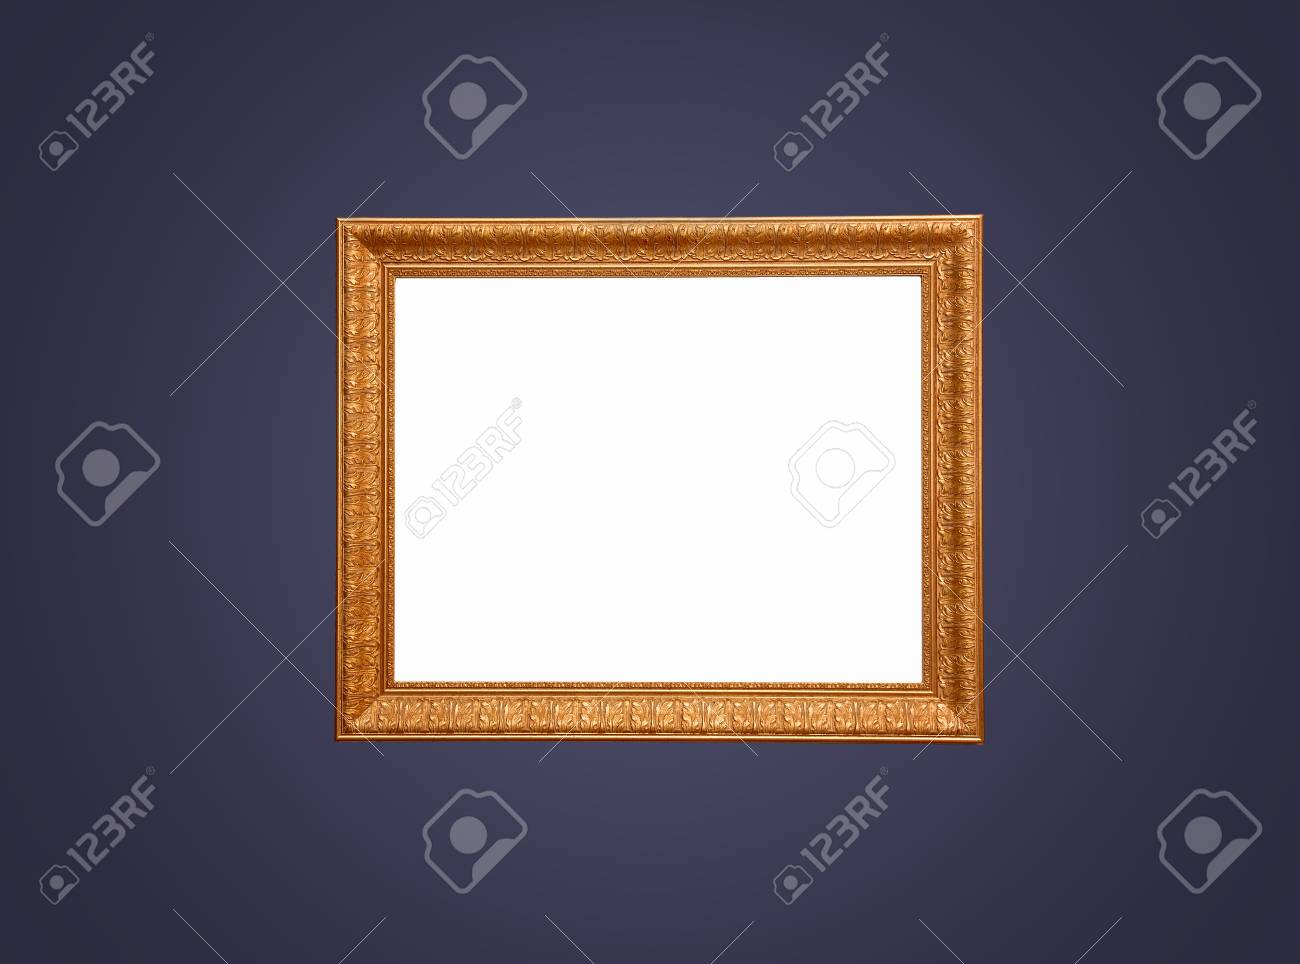 An wood and gold leaf empty frame for painting on a dark blue background. - 43271240